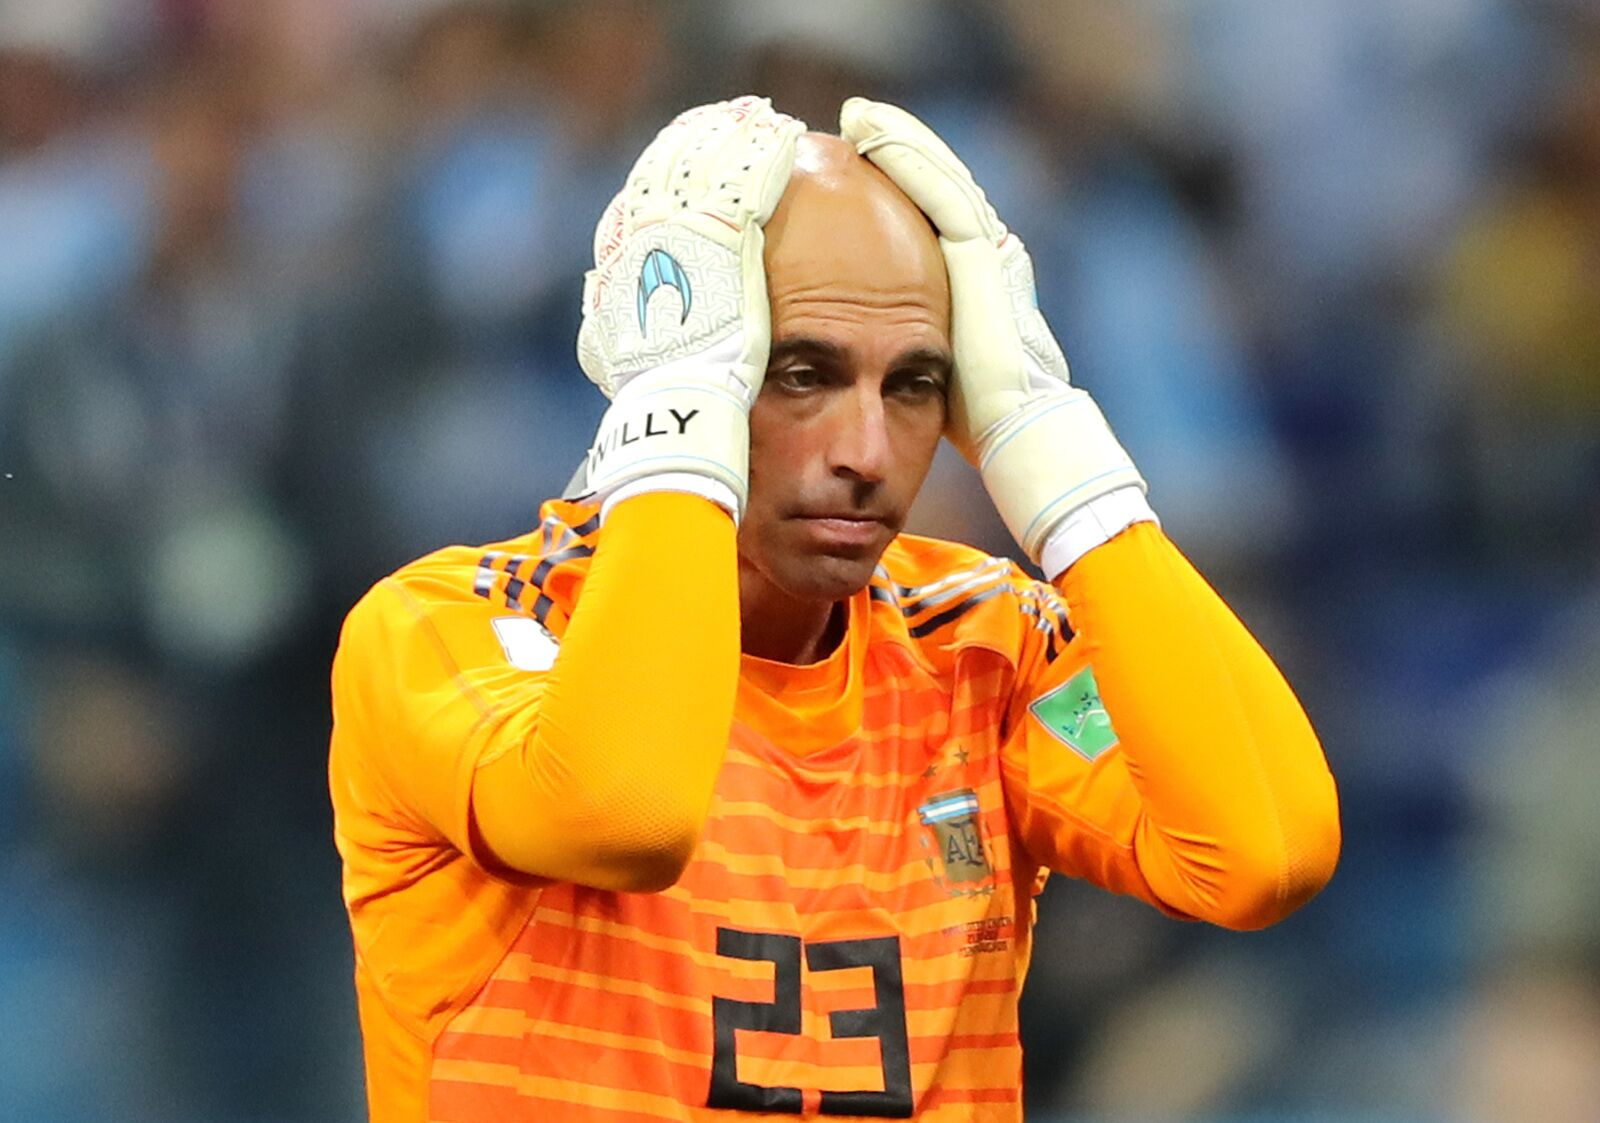 World Cup Day 8 awards: What have you done, Willy Caballero?